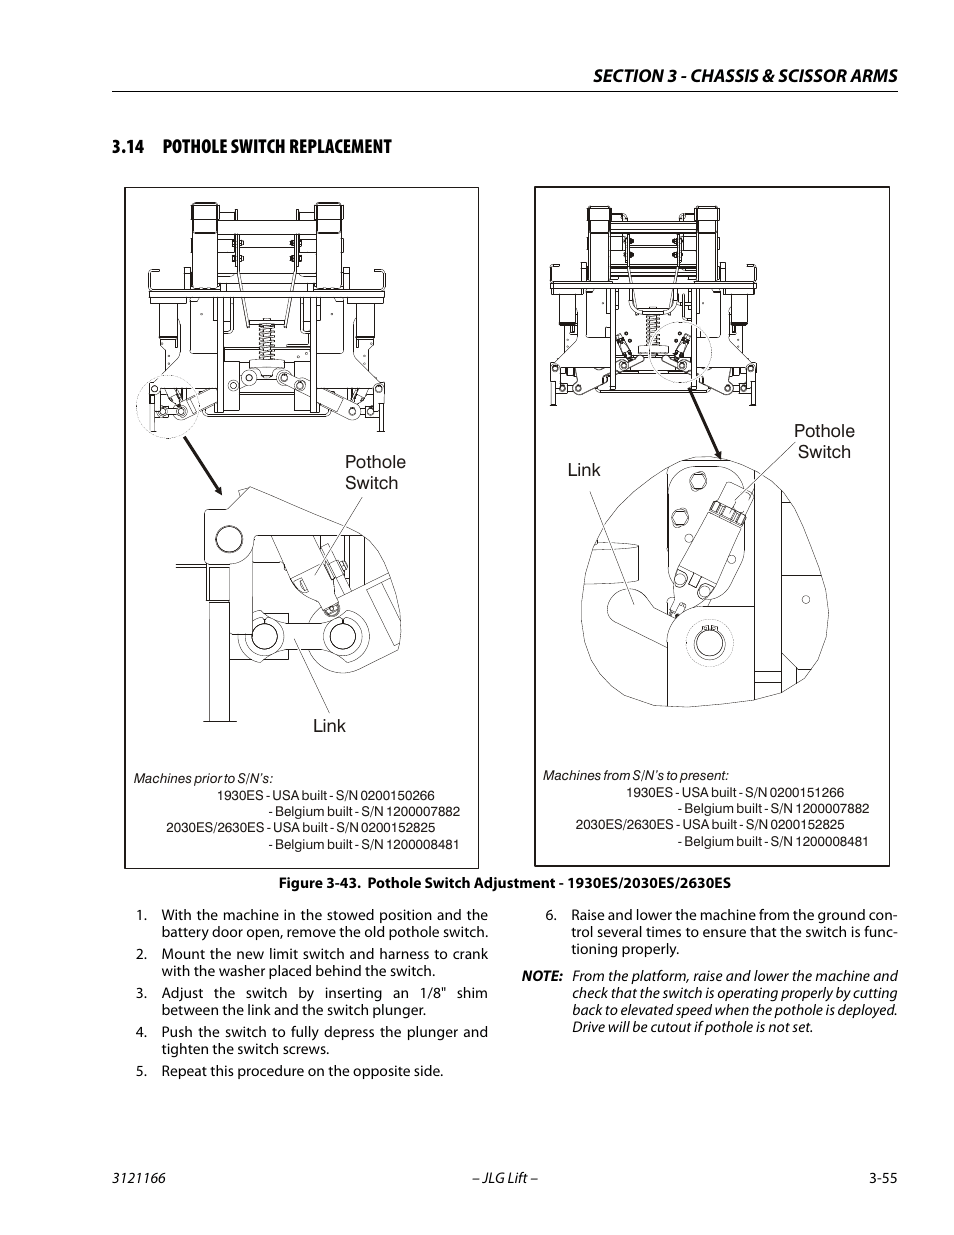 jlg 3246es service manual page91?resize\\\\\\\\\\\\\\\\\\\\\\\=665%2C861 chaparral 205 wiring diagram chaparral boat wiring waste tank mako wiring diagram at mifinder.co